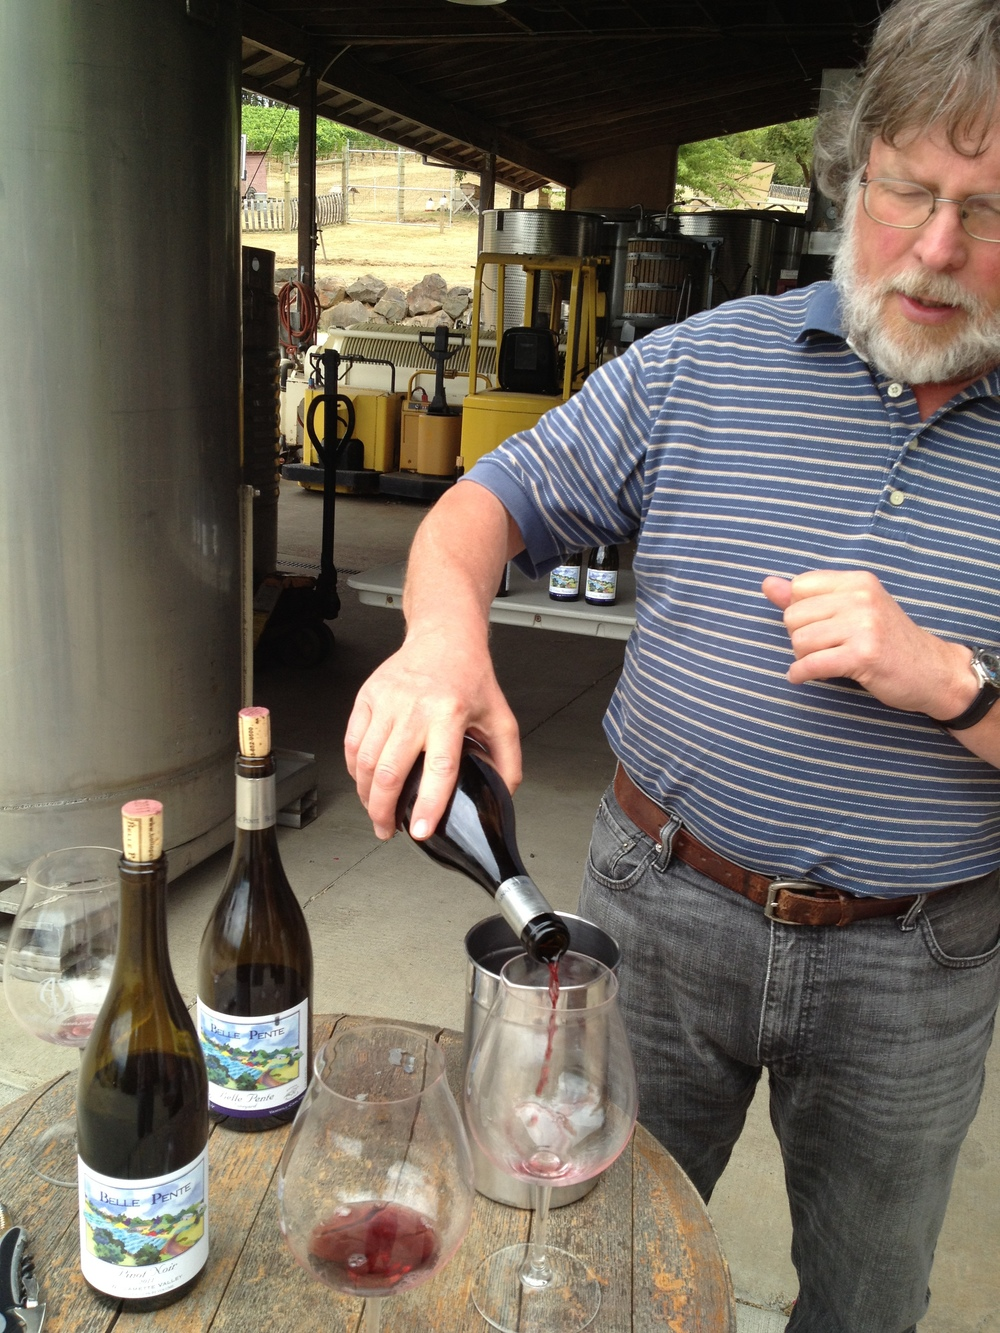 Quick stop to meet Brian O'Donnell and taste his wines at Belle Pente (Bell Pont) Winery.